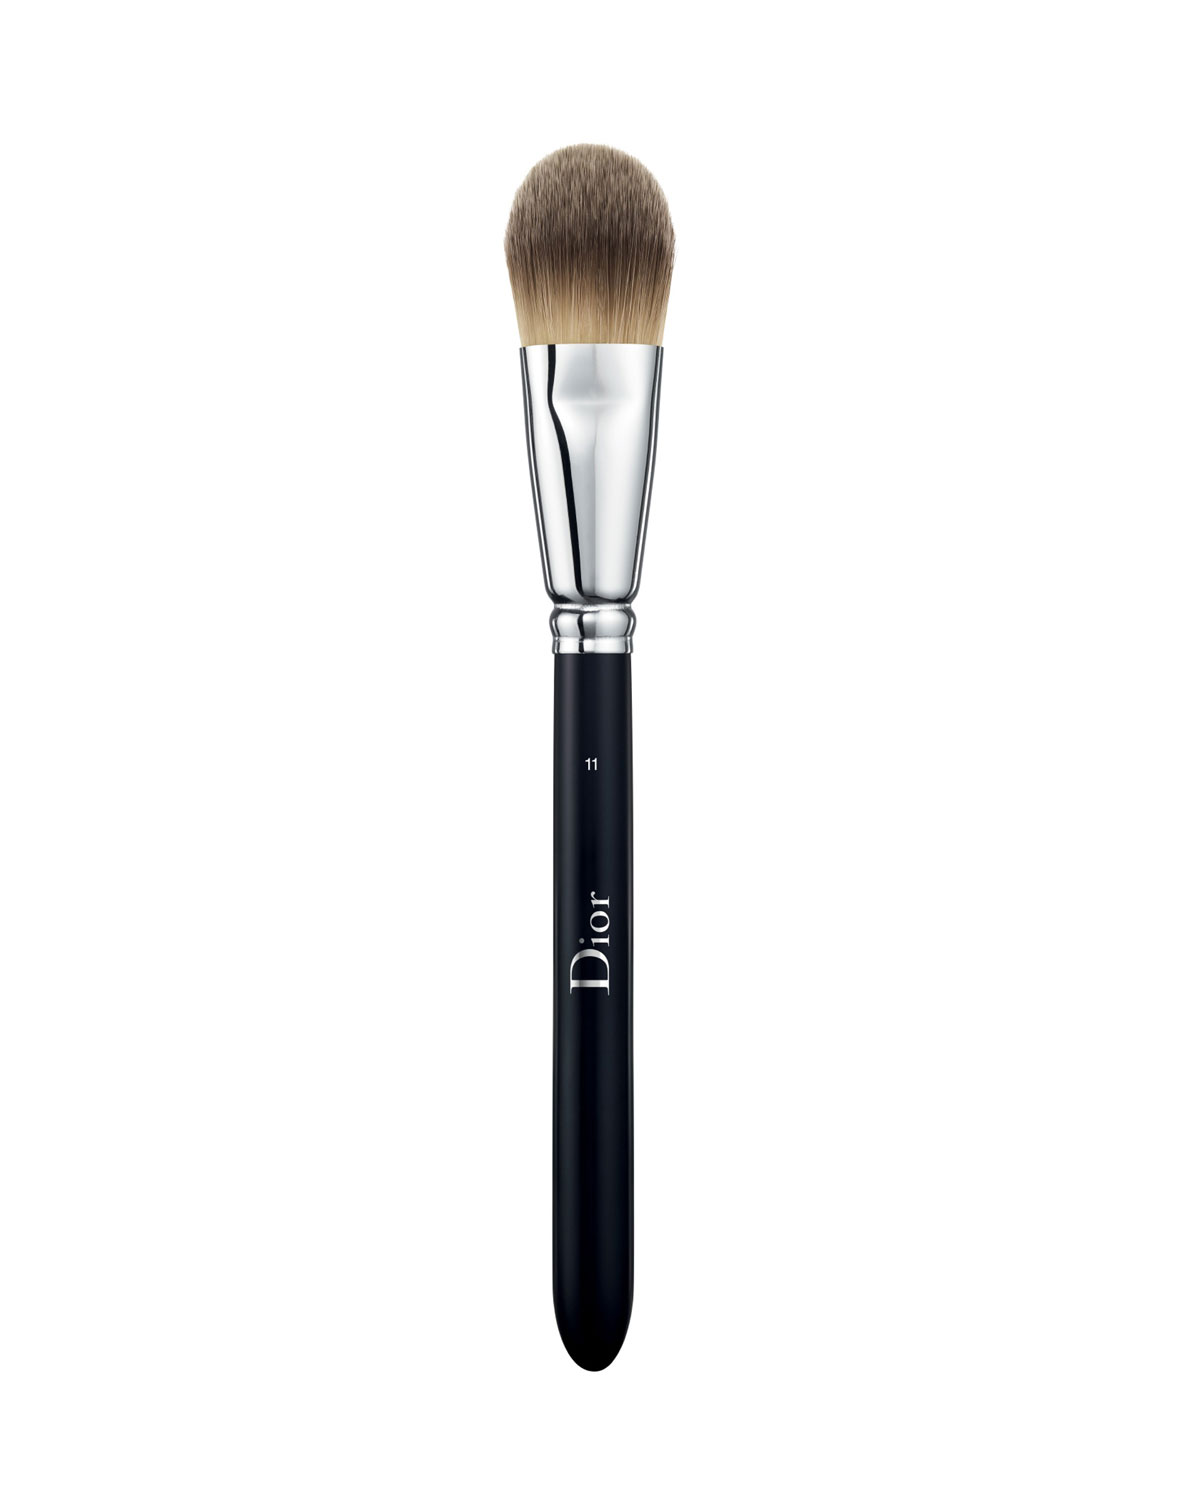 Dior Dior Backstage Light Coverage Fluid Foundation Brush